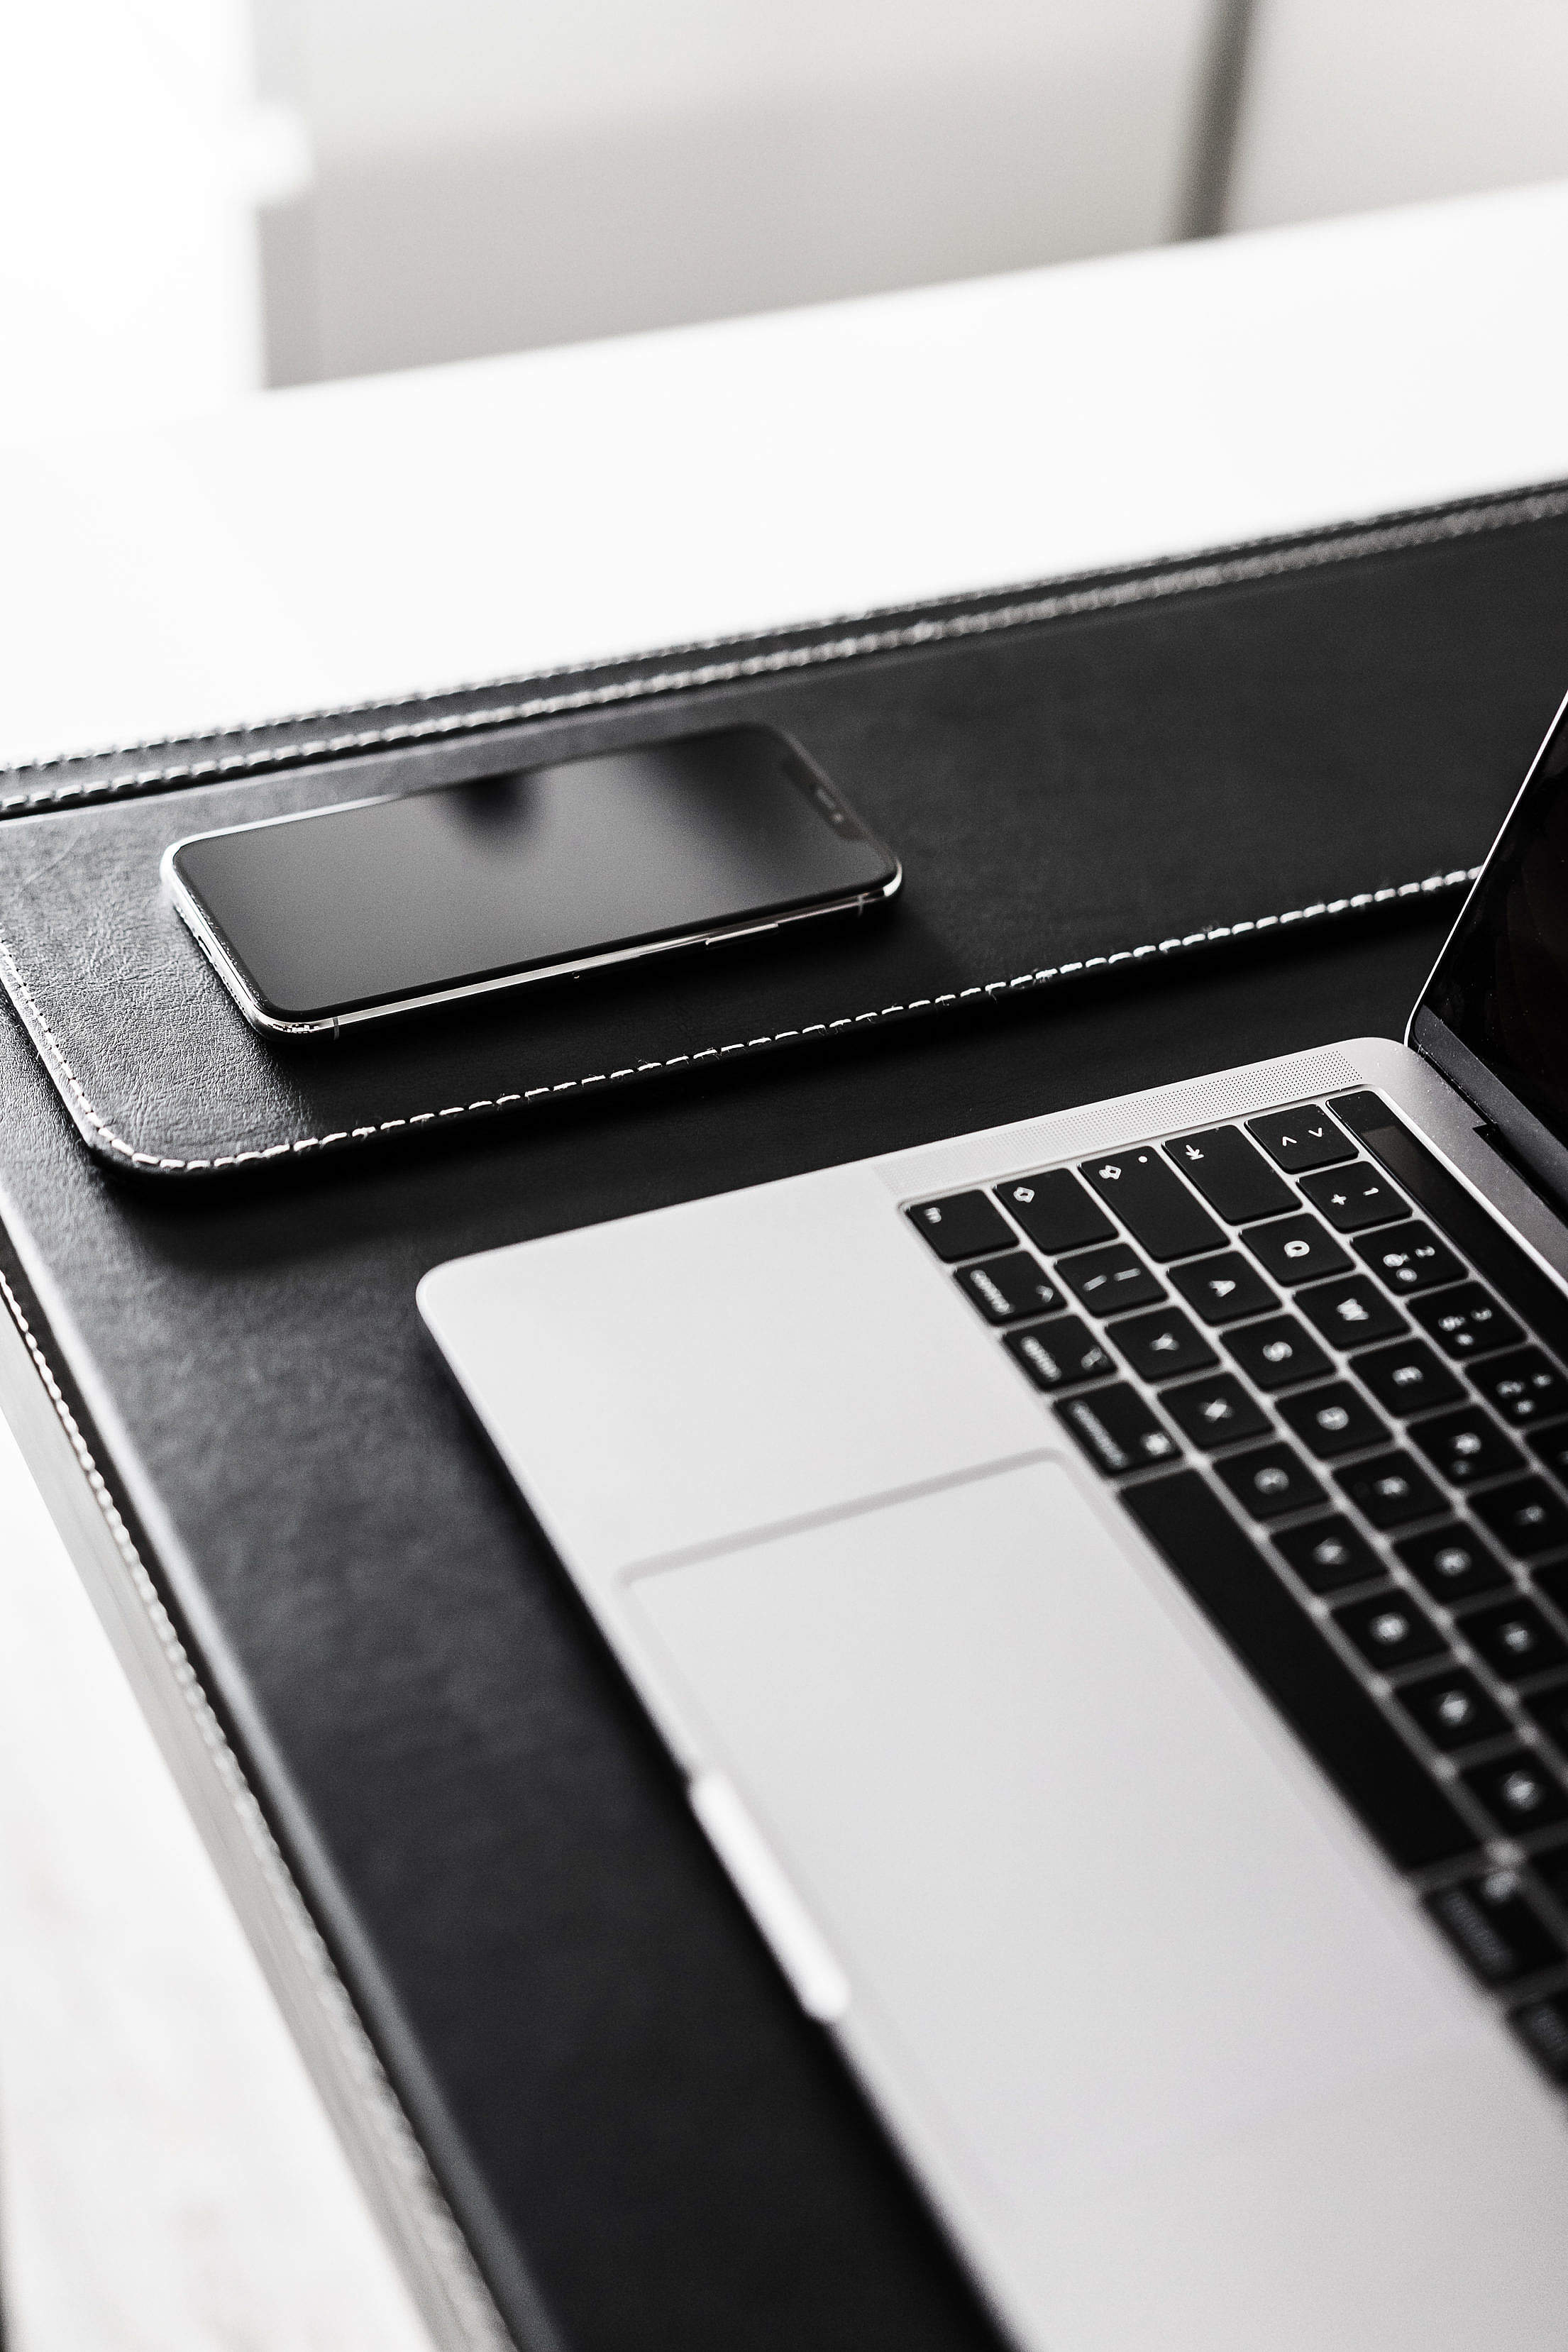 Modern Smartphone and Laptop Vertical Free Stock Photo